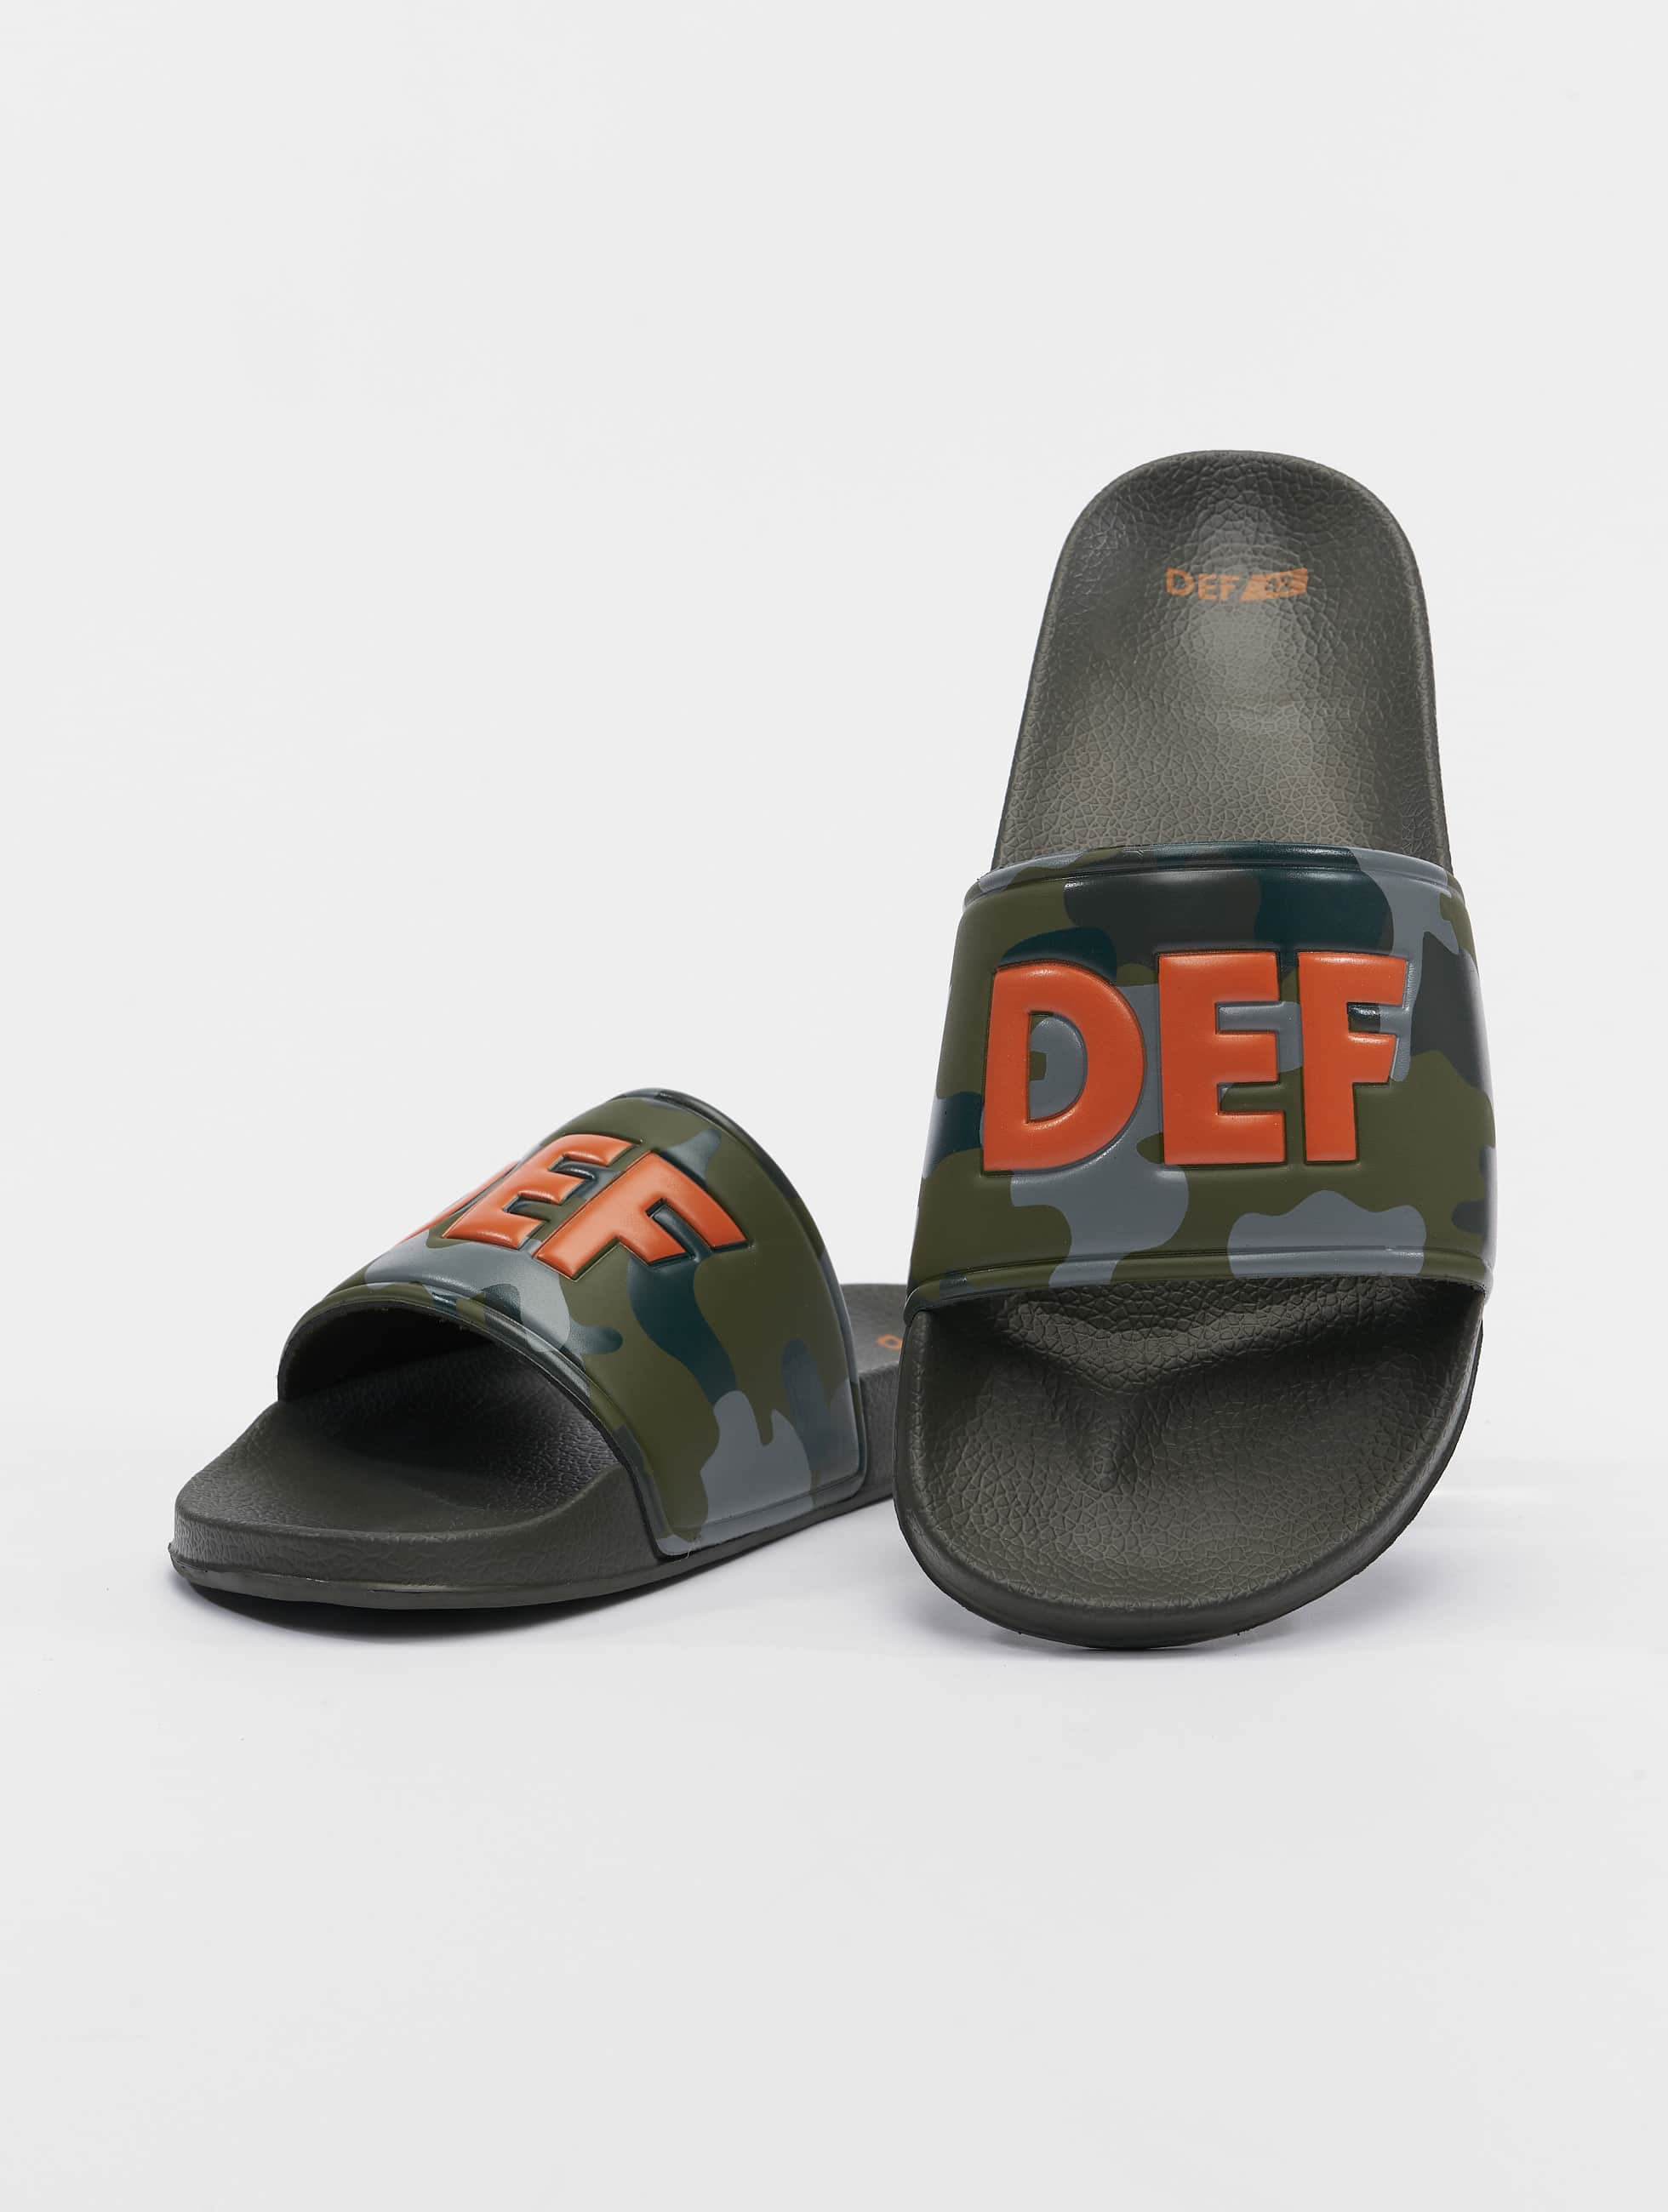 DEF / Sandals Defiletten in camouflage 46